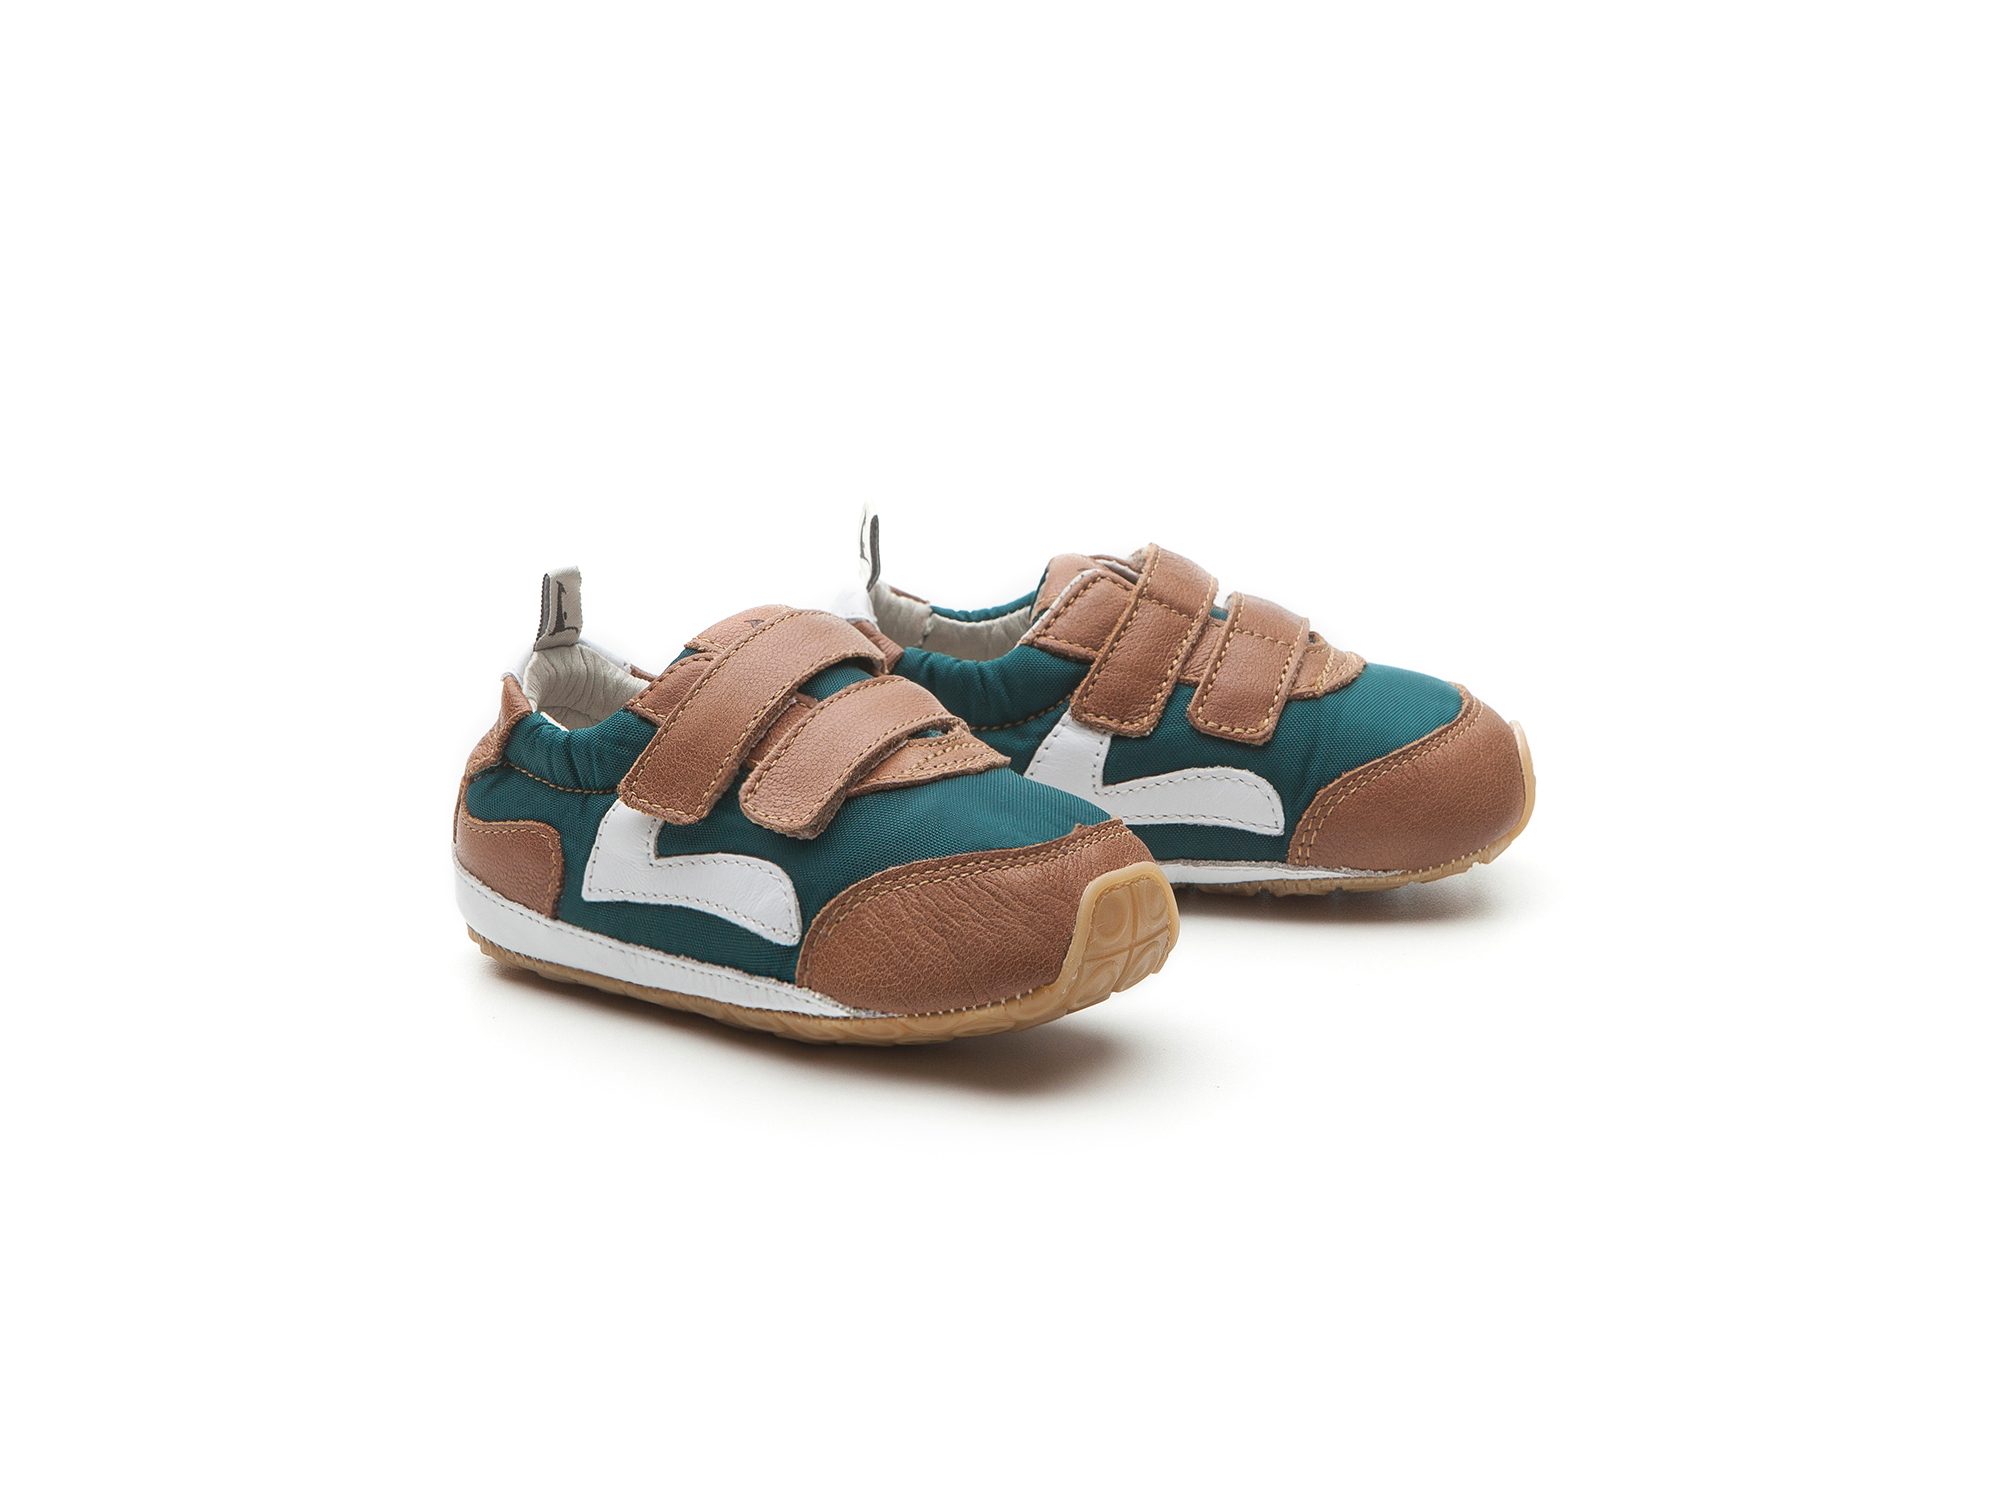 Tênis Jumpy Palm Nylon/ Whisky Baby 0 à 2 anos - 0